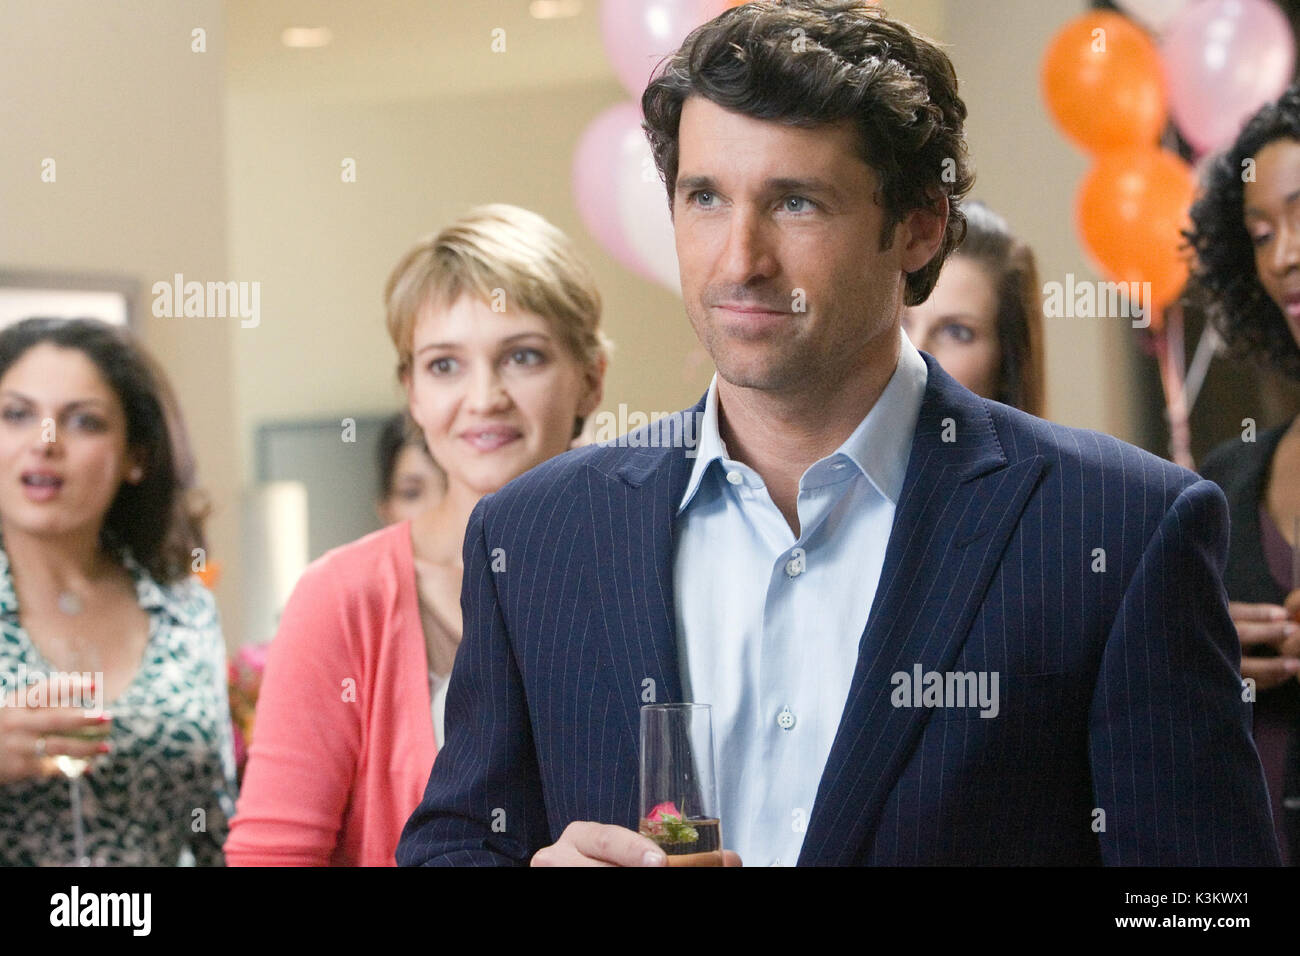 Made Of Honor Patrick Dempsey Date 2008 Stock Photo 157174697 Alamy